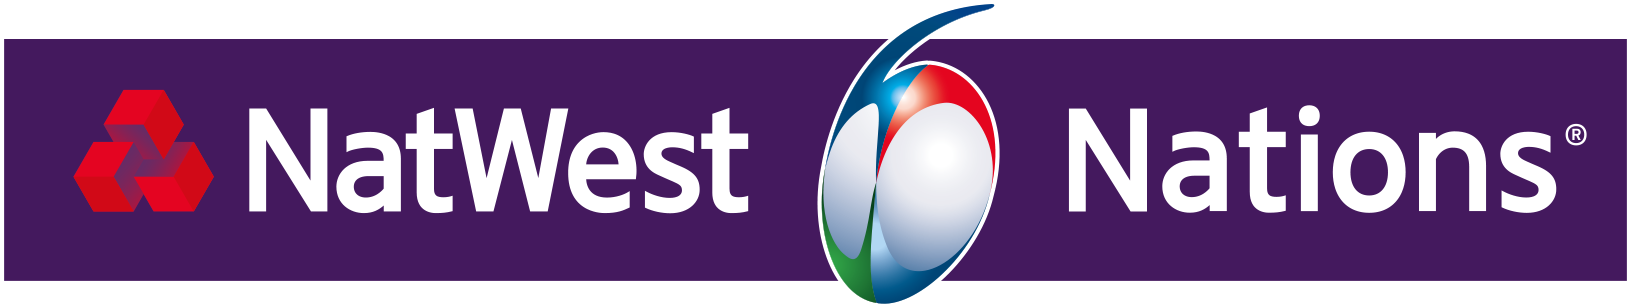 The NatWest 6 Nations | Official Website